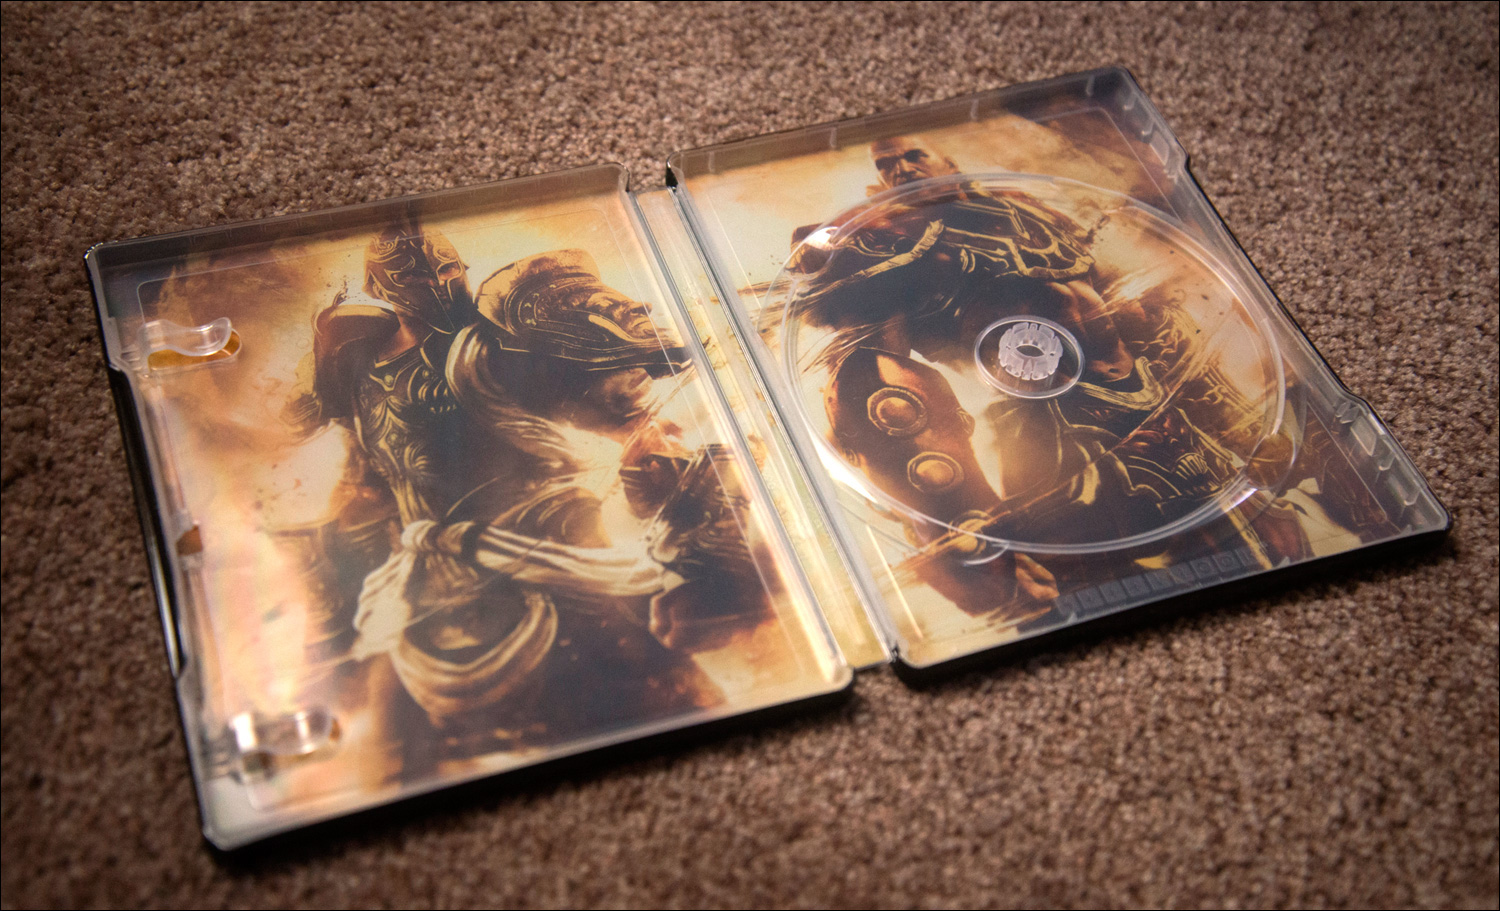 God-of-War-Ascension-Special-Edition-Steelbook-Inside